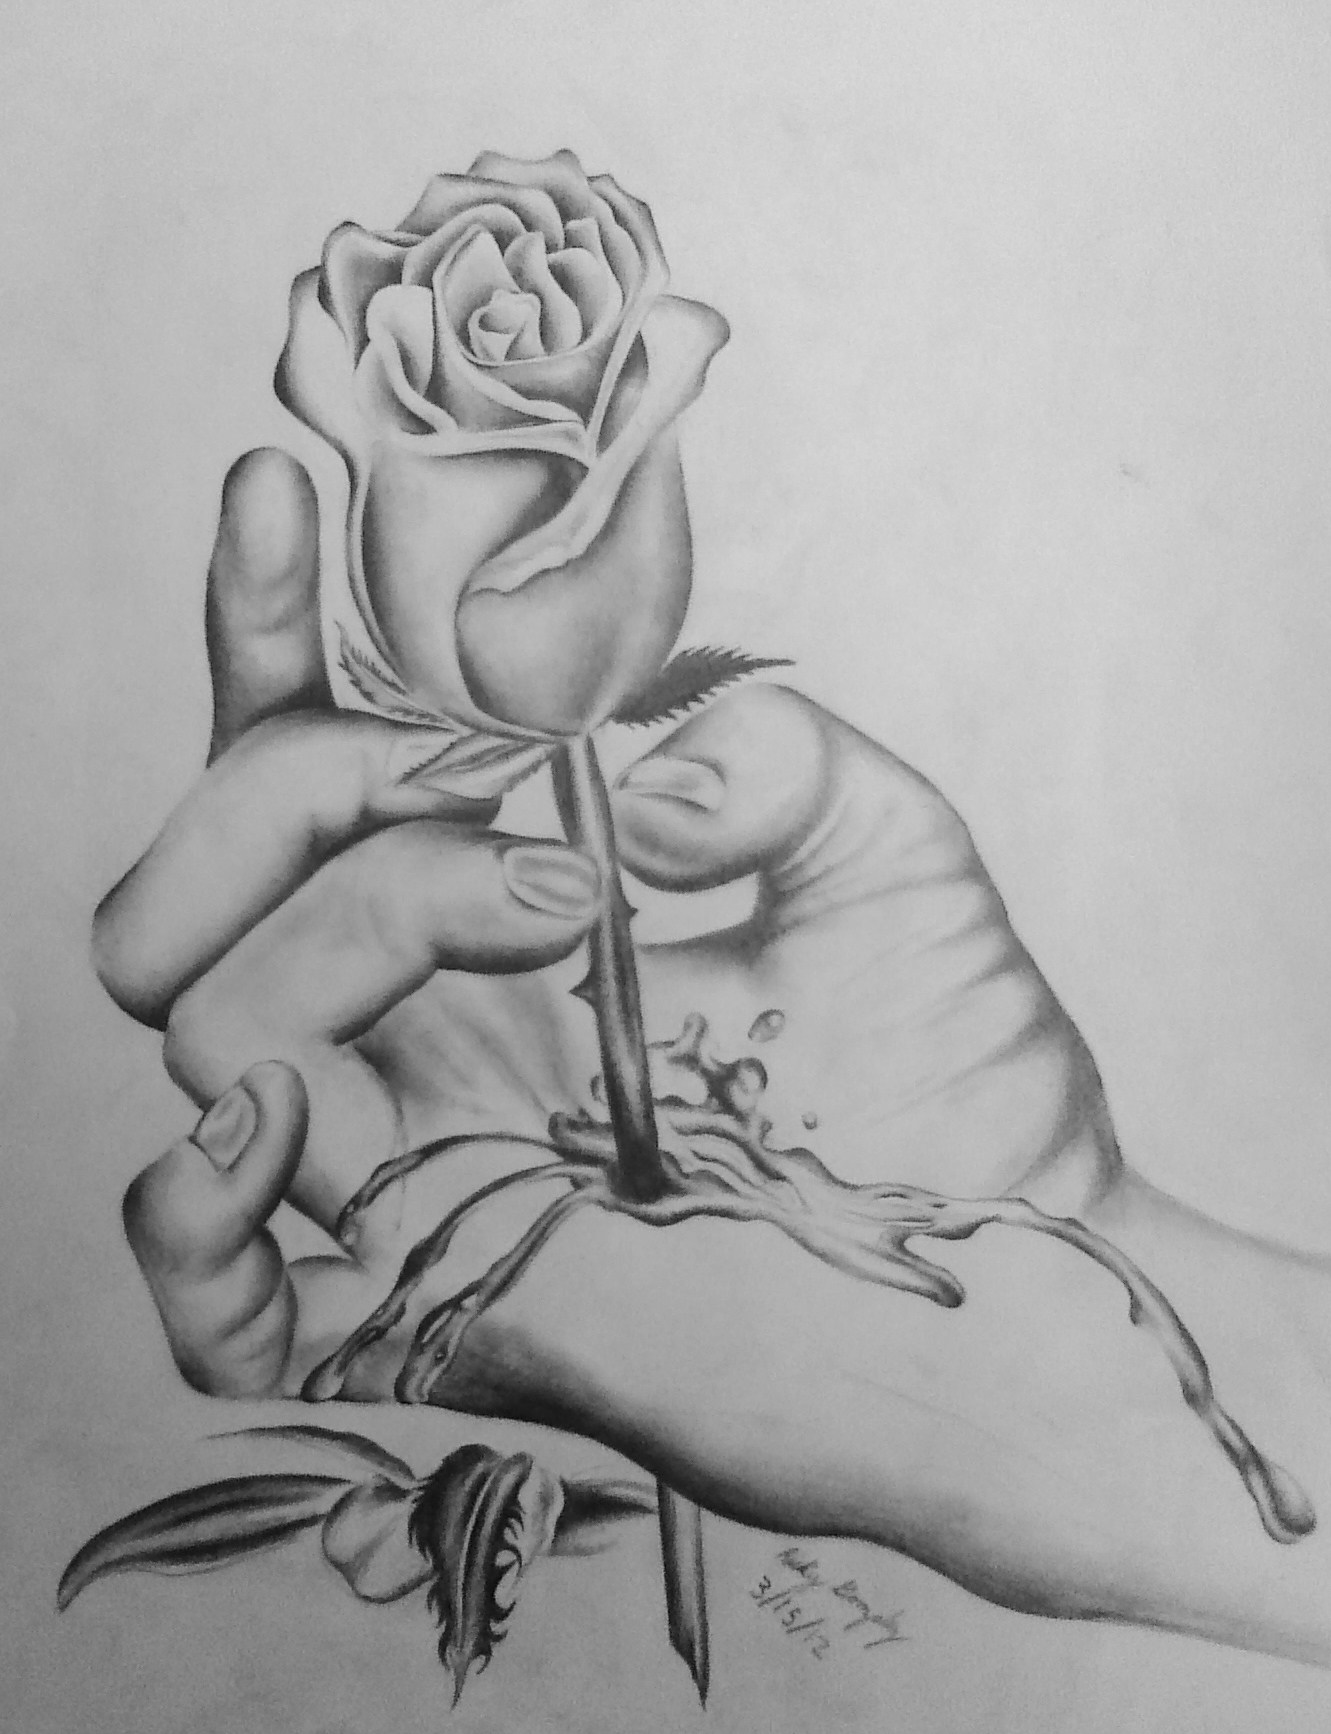 bleeding hand rose